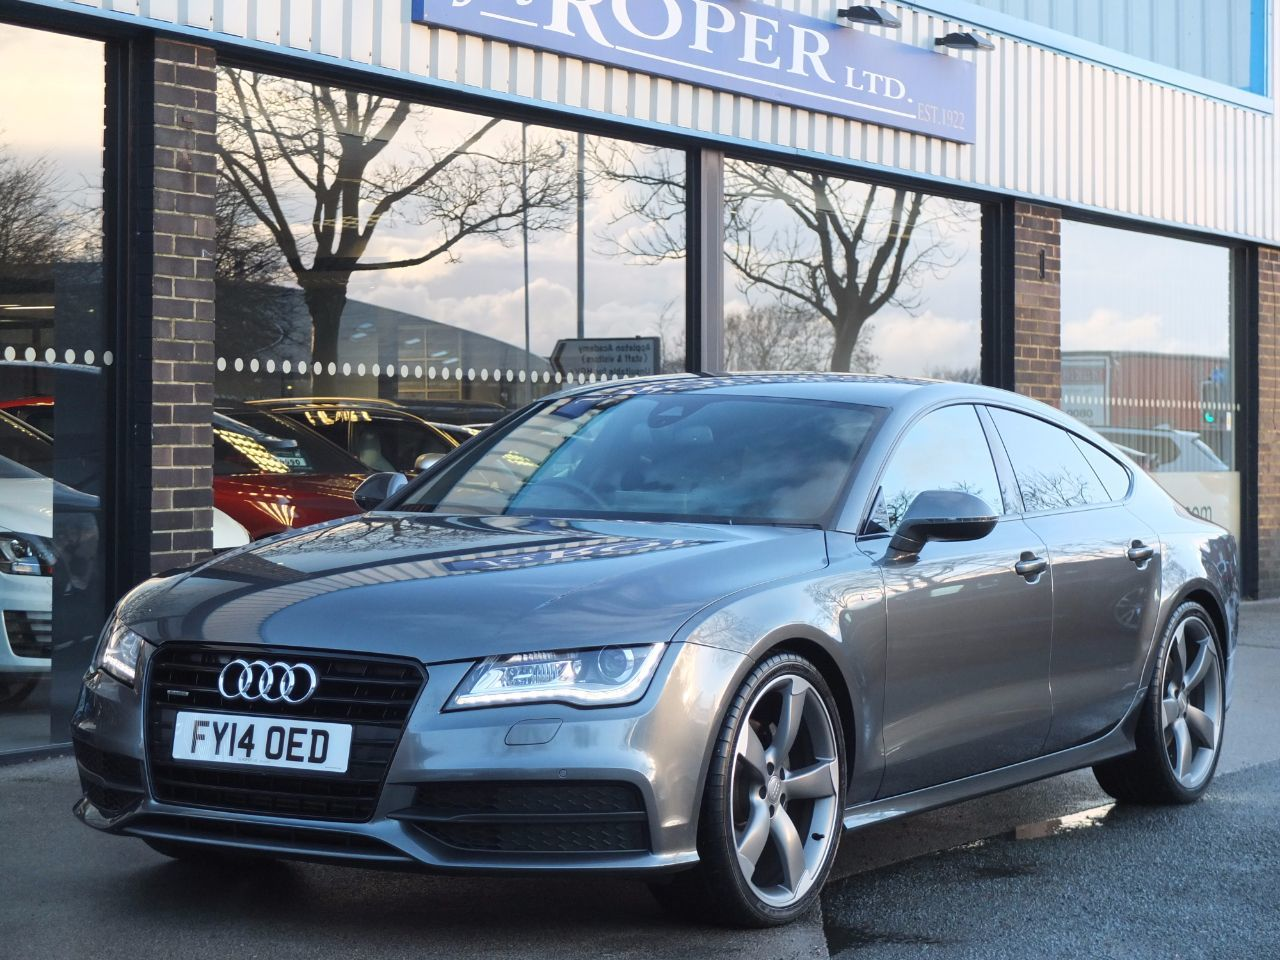 Audi A7 3.0 TDI quattro Black Edition S tronic 245ps [5 Seat] Hatchback Diesel Daytona Grey MetallicAudi A7 3.0 TDI quattro Black Edition S tronic 245ps [5 Seat] Hatchback Diesel Daytona Grey Metallic at fa Roper Ltd Bradford